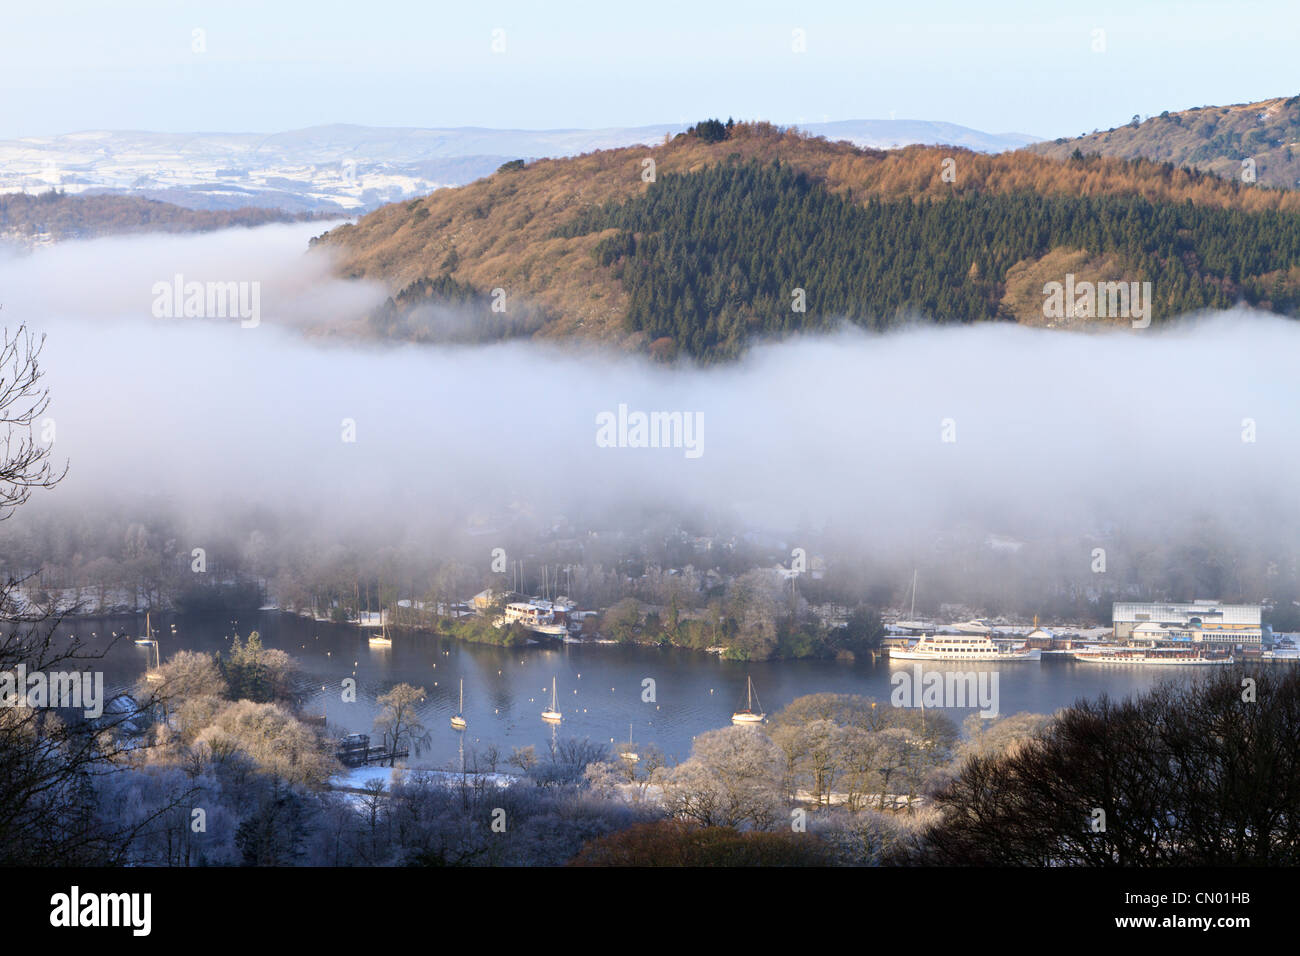 Fell Foot Park in Winter, Lake Windermere, England - Stock Image